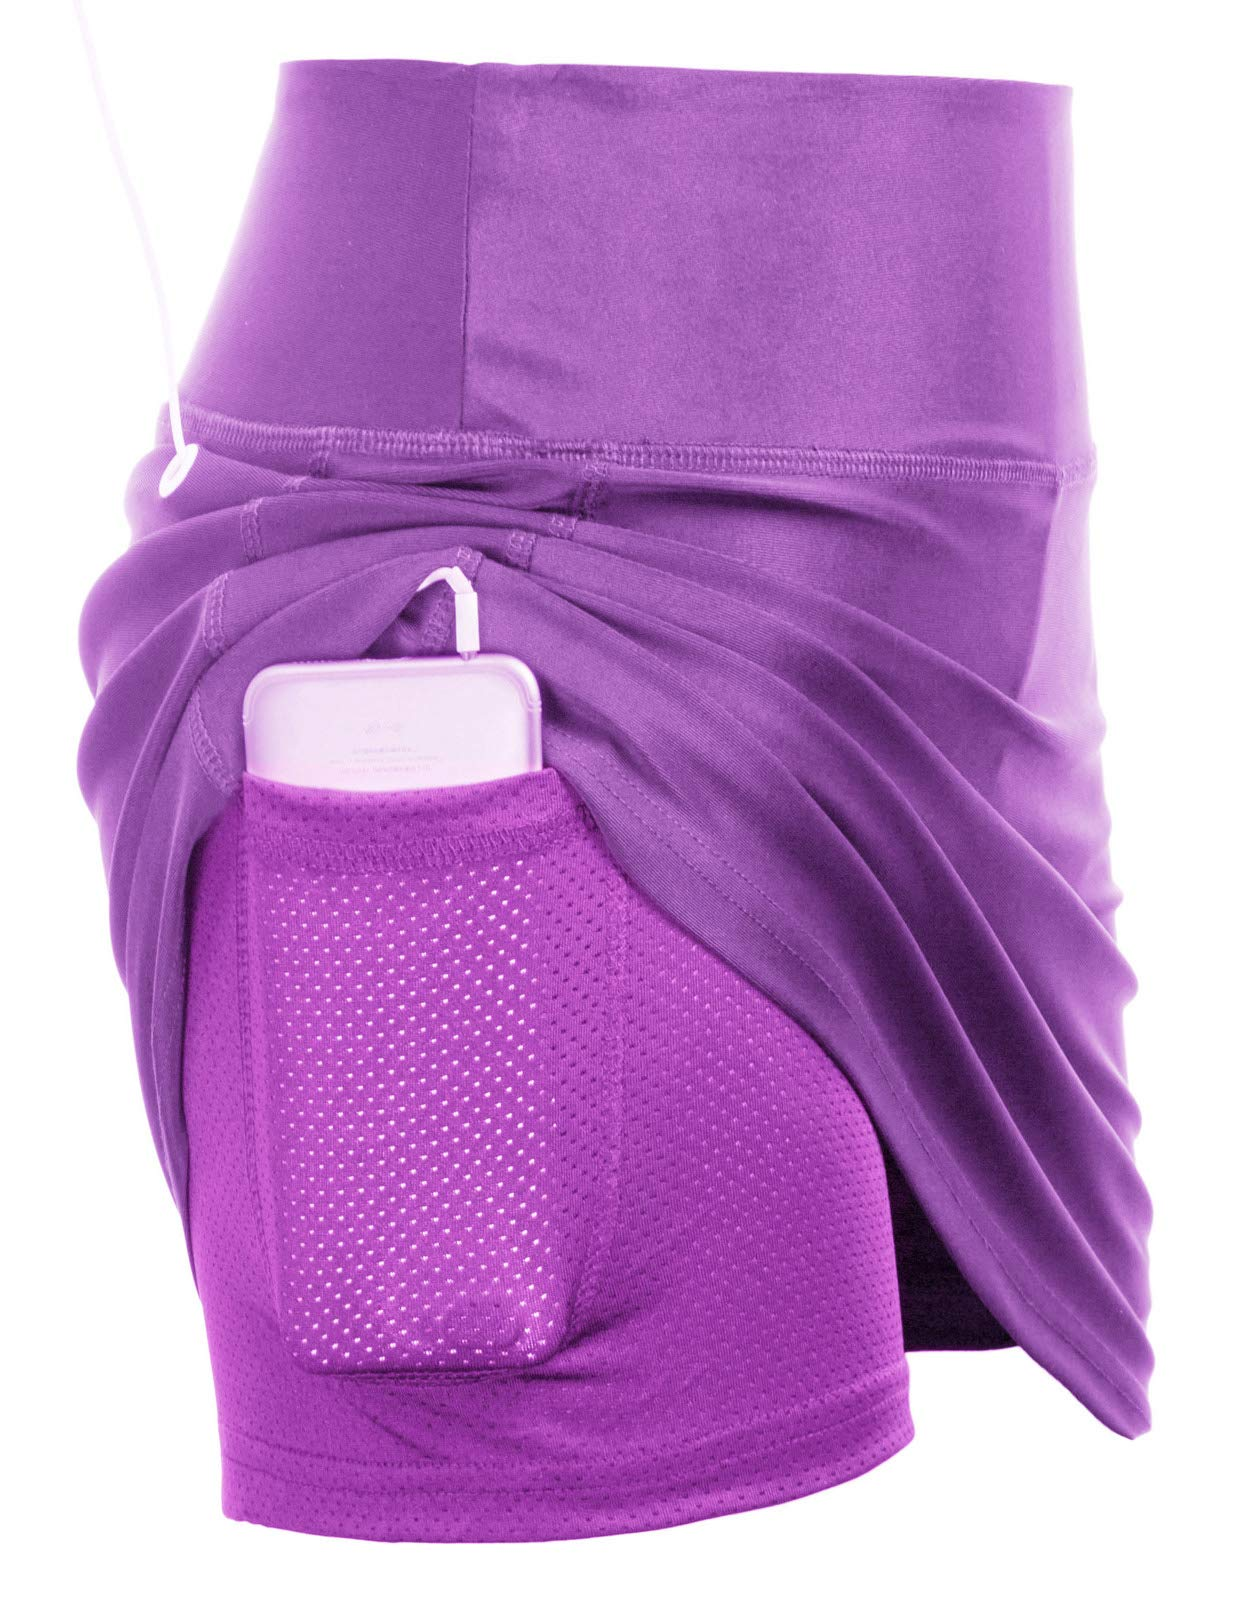 Active Women's Golf Athletic Skort with Underneath Shorts(XL,Purple) by JACK SMITH